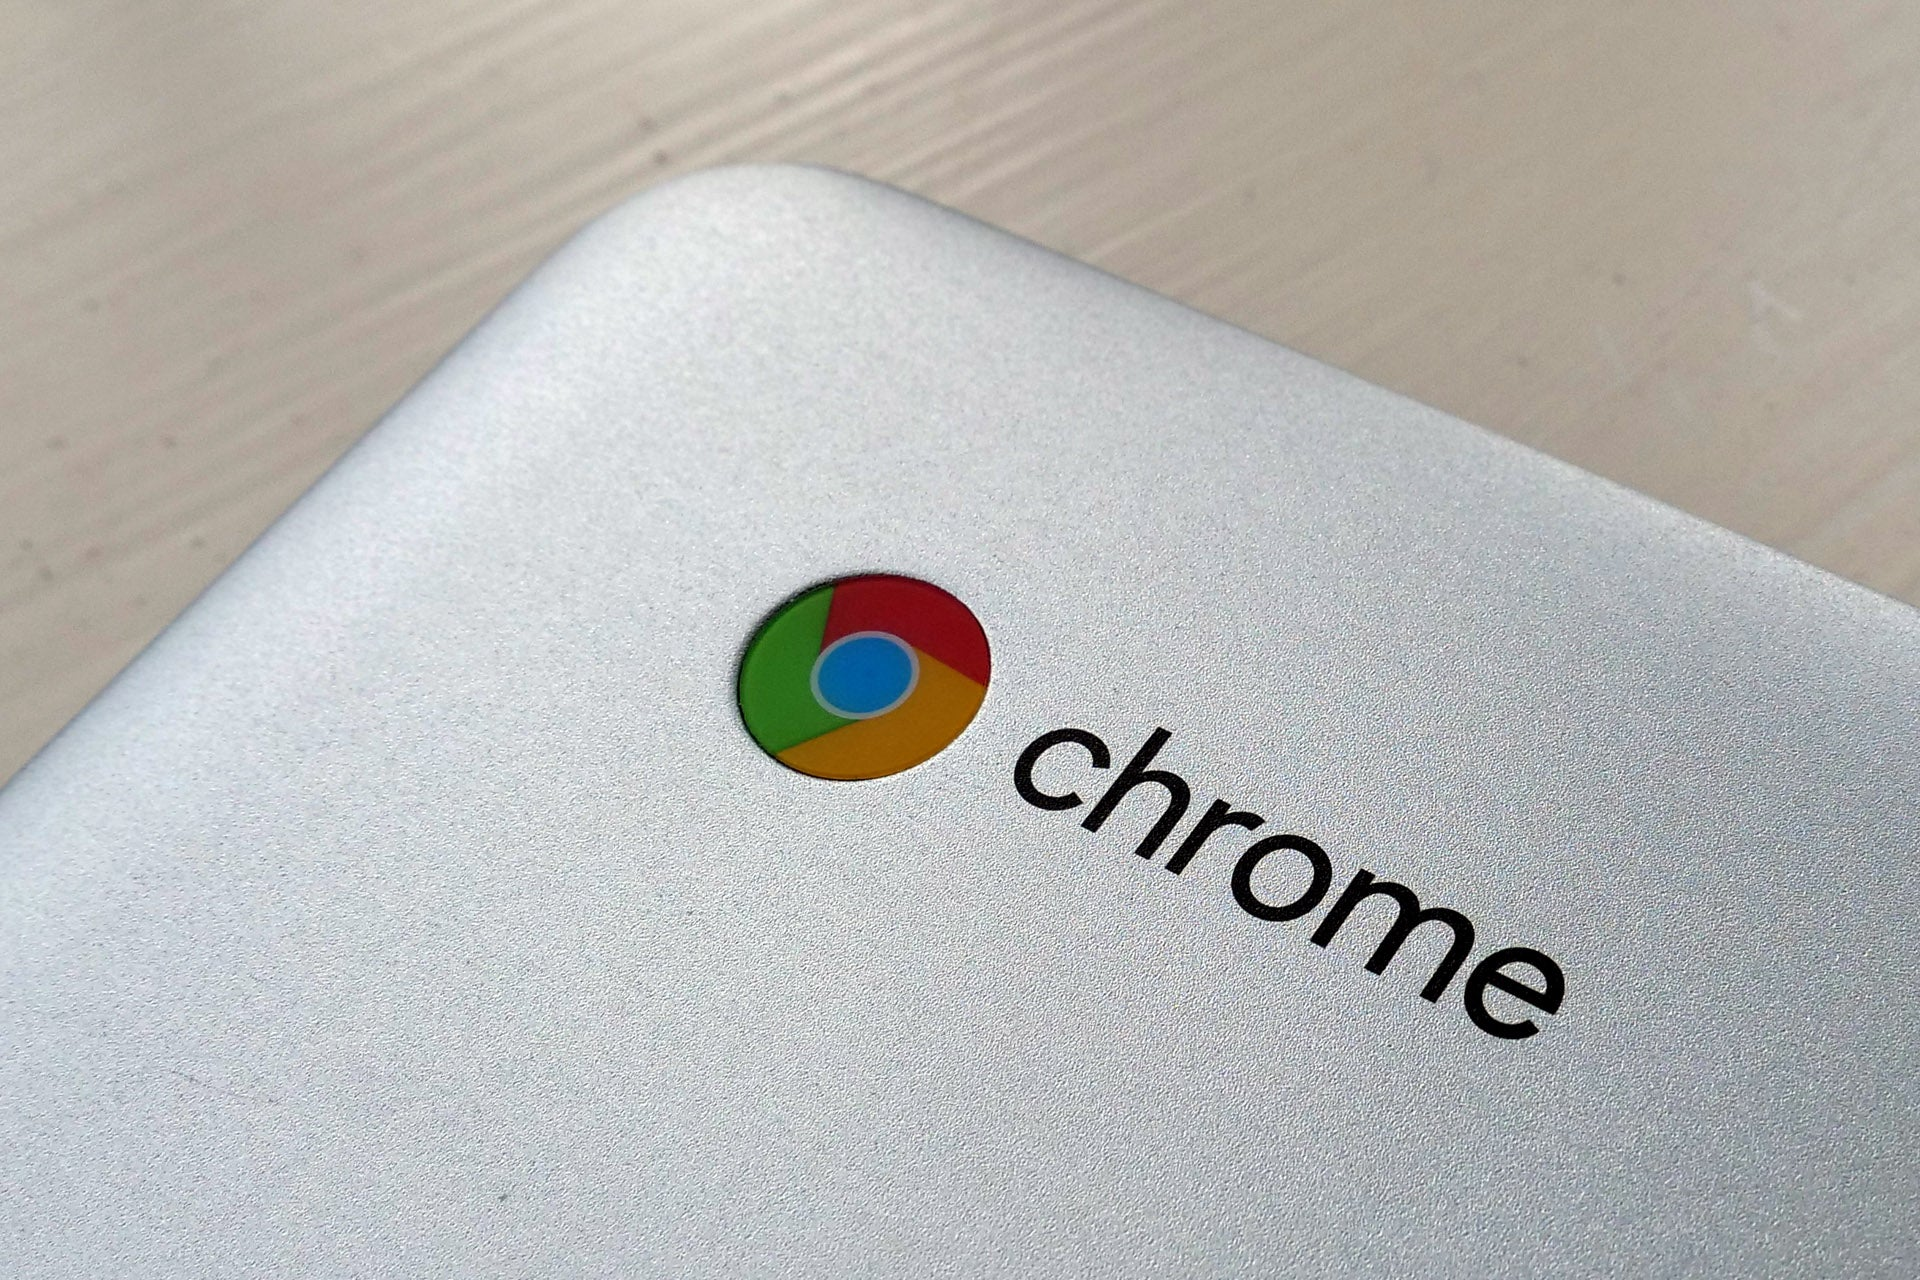 Google Chrome is targeting websites that don't respect the 'back' button | Trusted Reviews